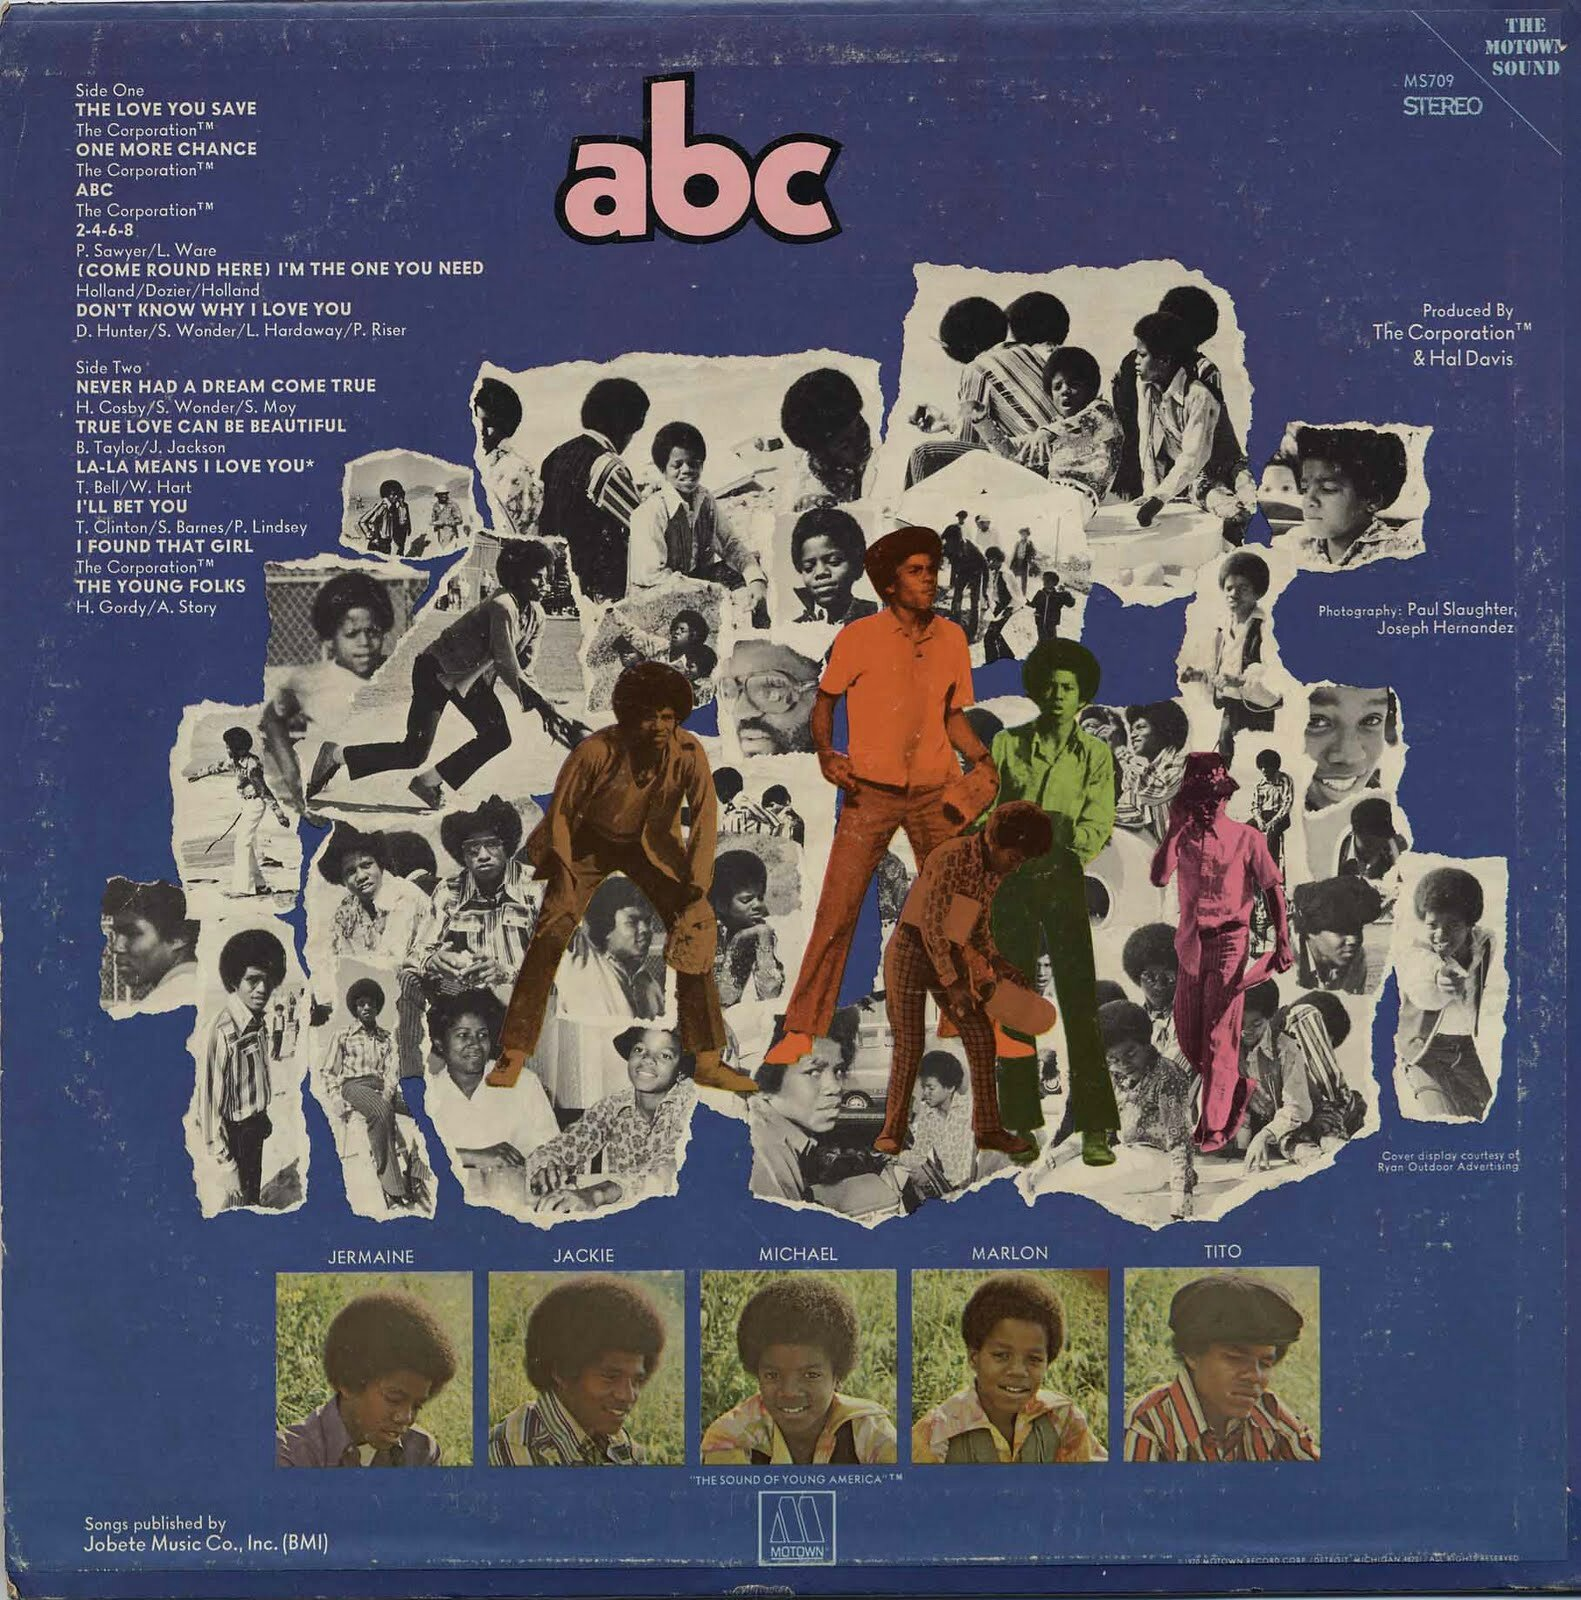 Jackson 5 l 39 album abc 8 mai 1970 on michael jackson 39 s for Jackson 5 mural gary indiana